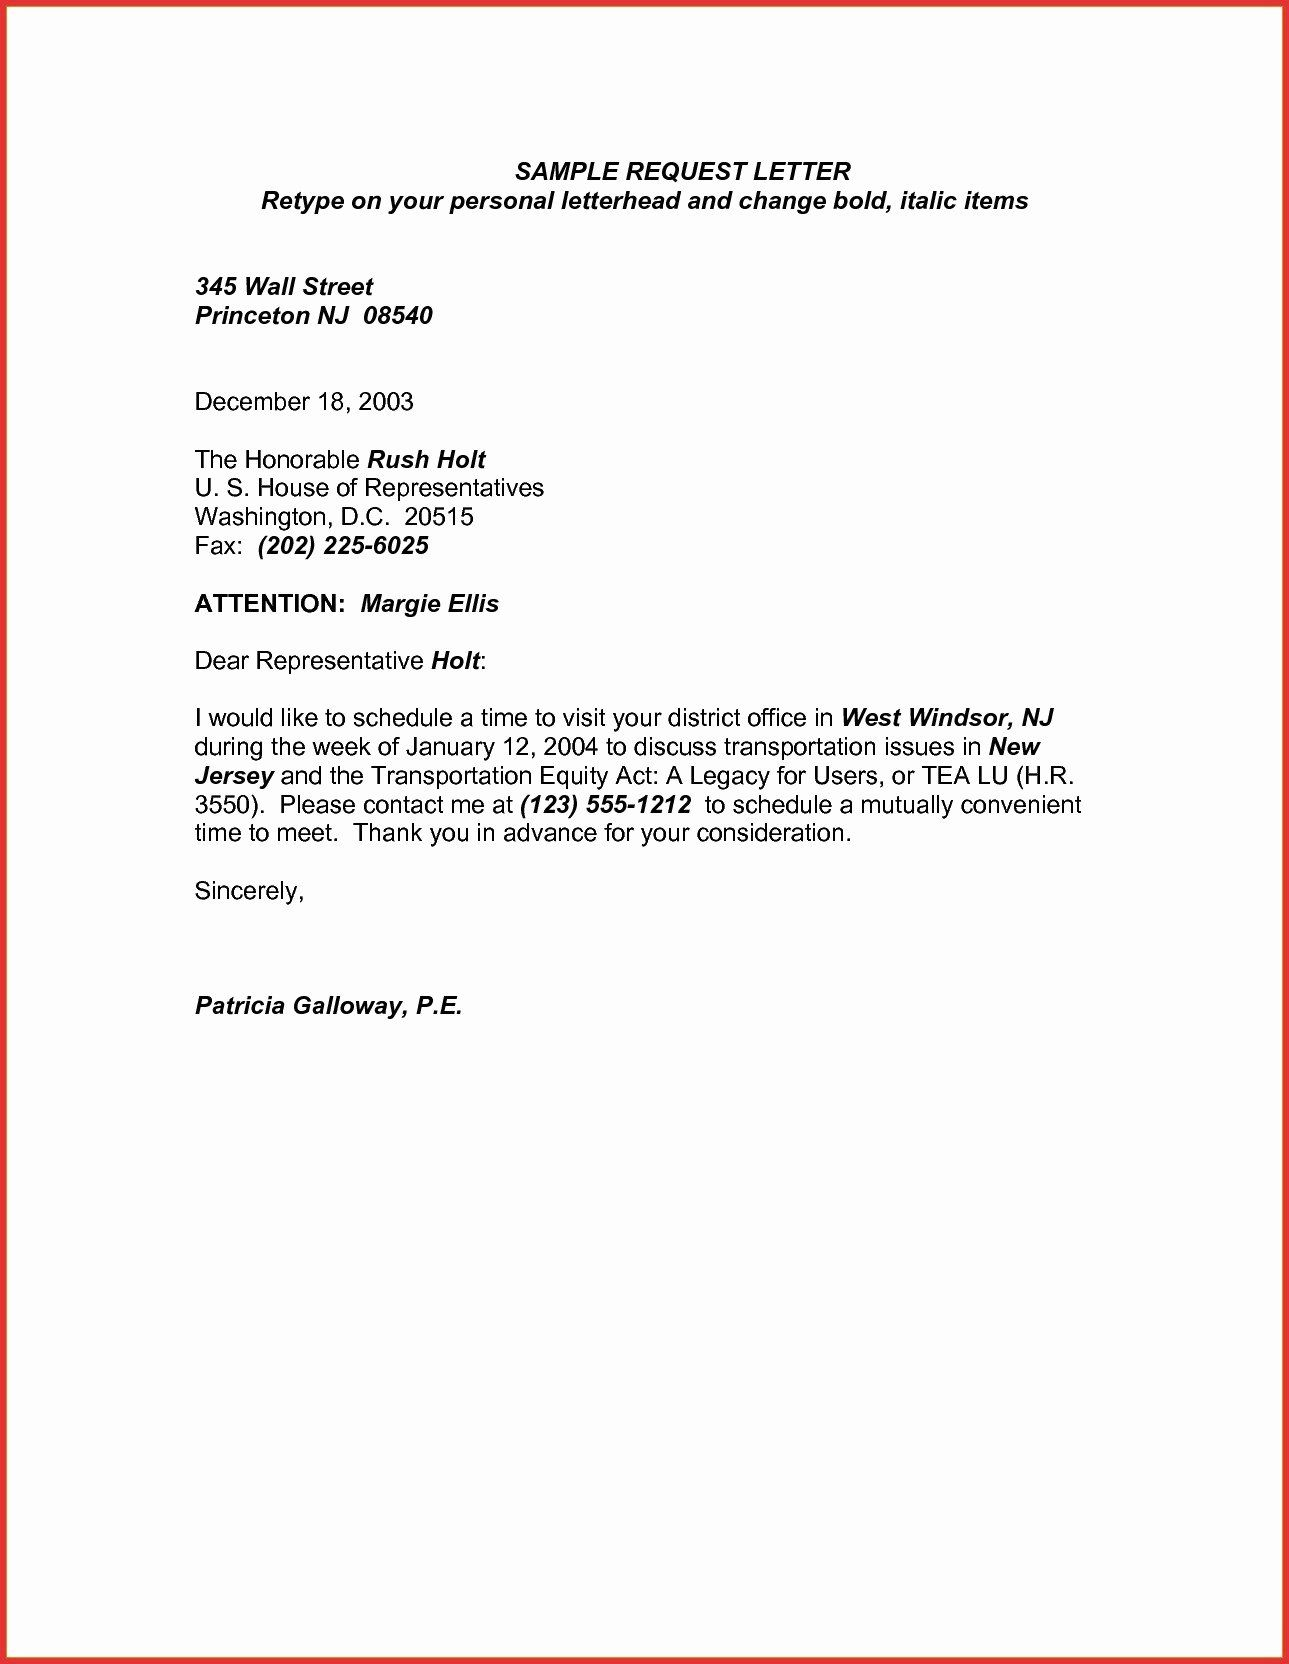 Absent From School Letter Template Lovely 12 13 Absent